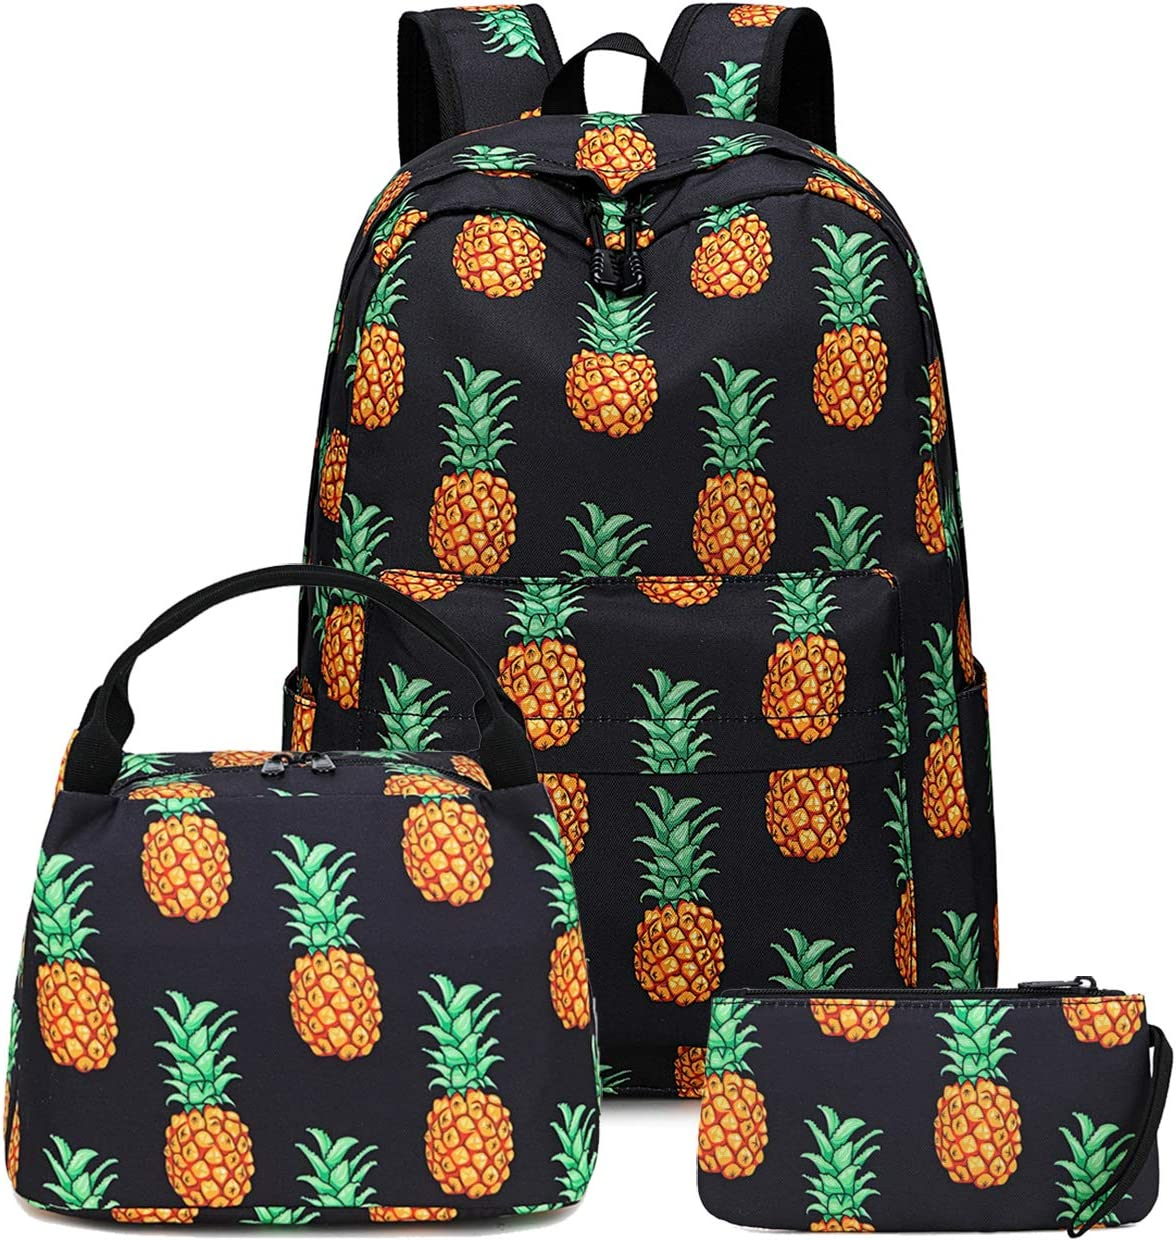 Teens Backpack School Grils Bookbag Schoolbag with Lunch tote and Pencilcase for Kids backpack set (Black)